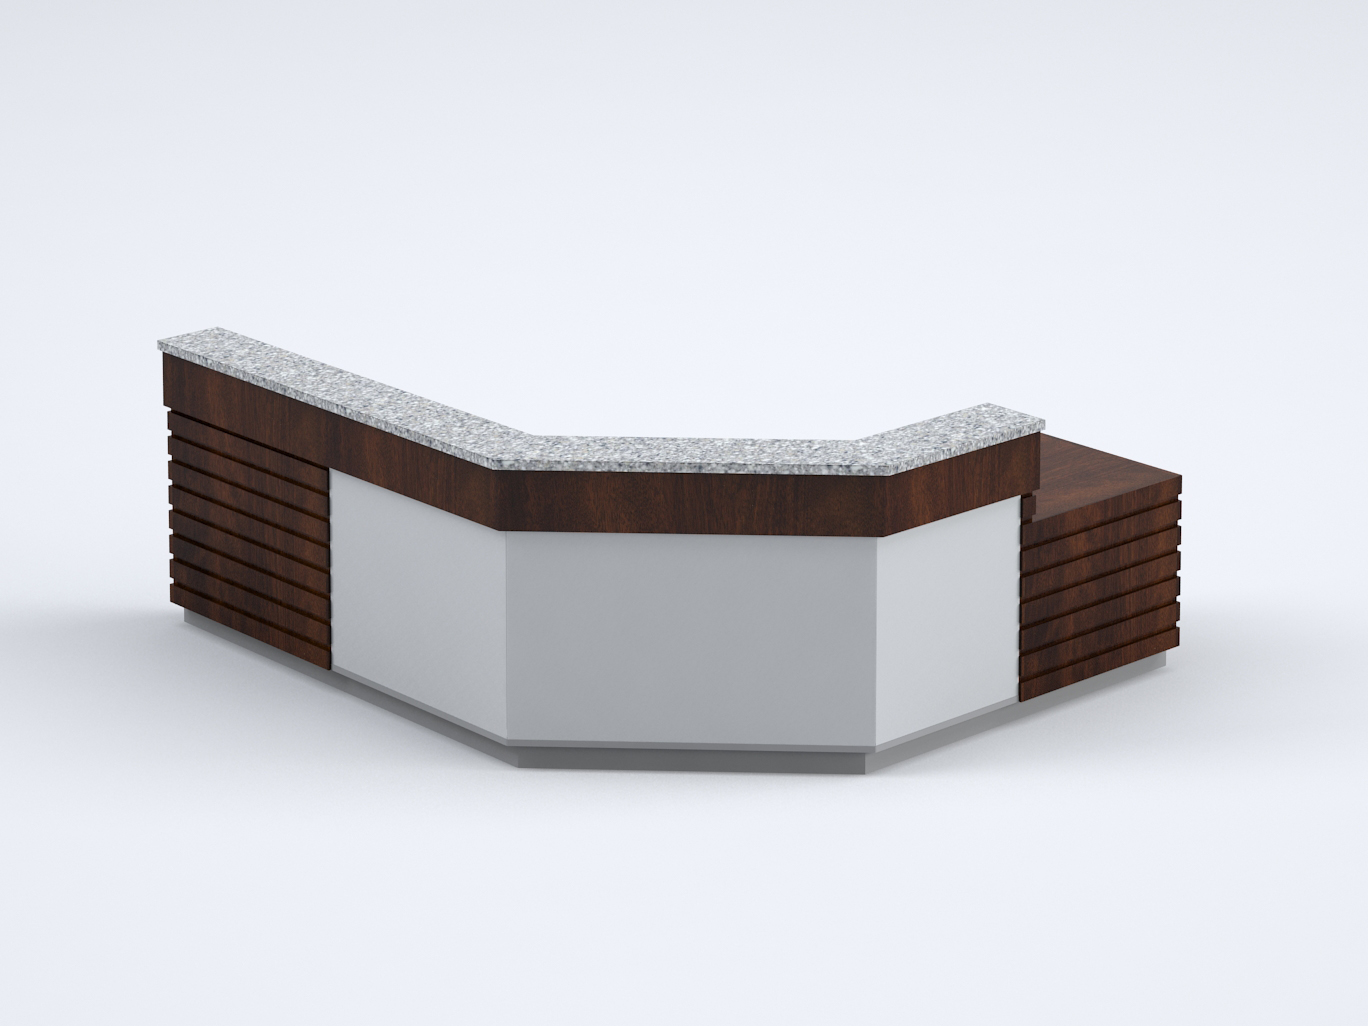 Reception Desks - Create a welcoming experience with our custom reception desks. An array of durable finishes give you options for expressing a brand. And, with seamless integration of power and data, working at one of our desks is as easy as sitting down and powering up.You're Welcome →